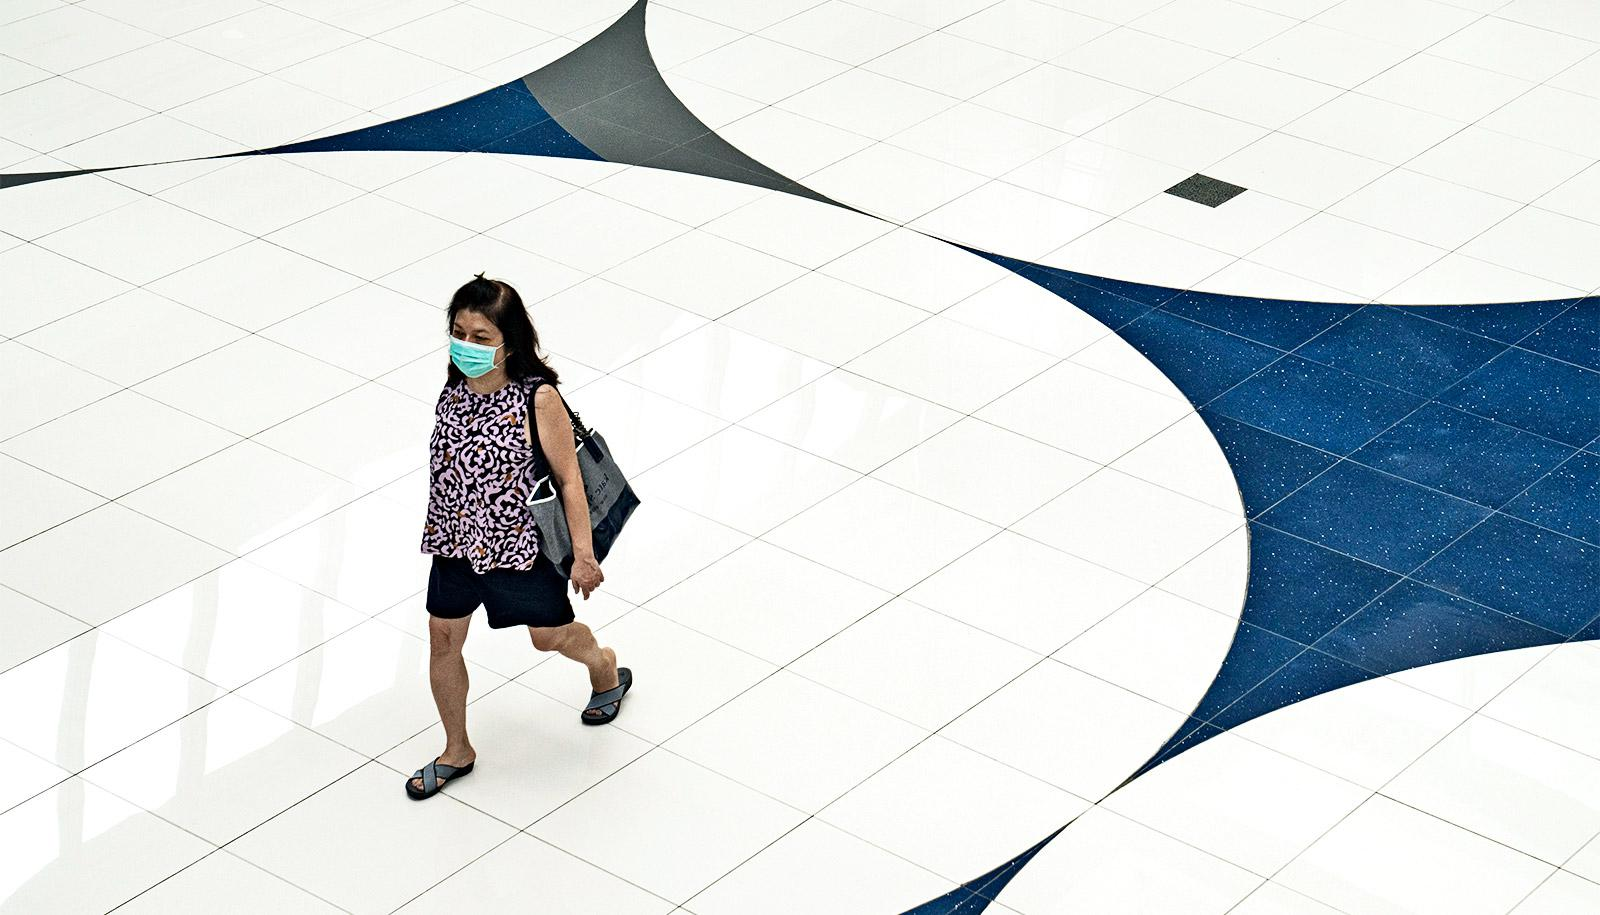 A woman walks over a white and blue tiled floor while wearing a face mask and carrying a purse